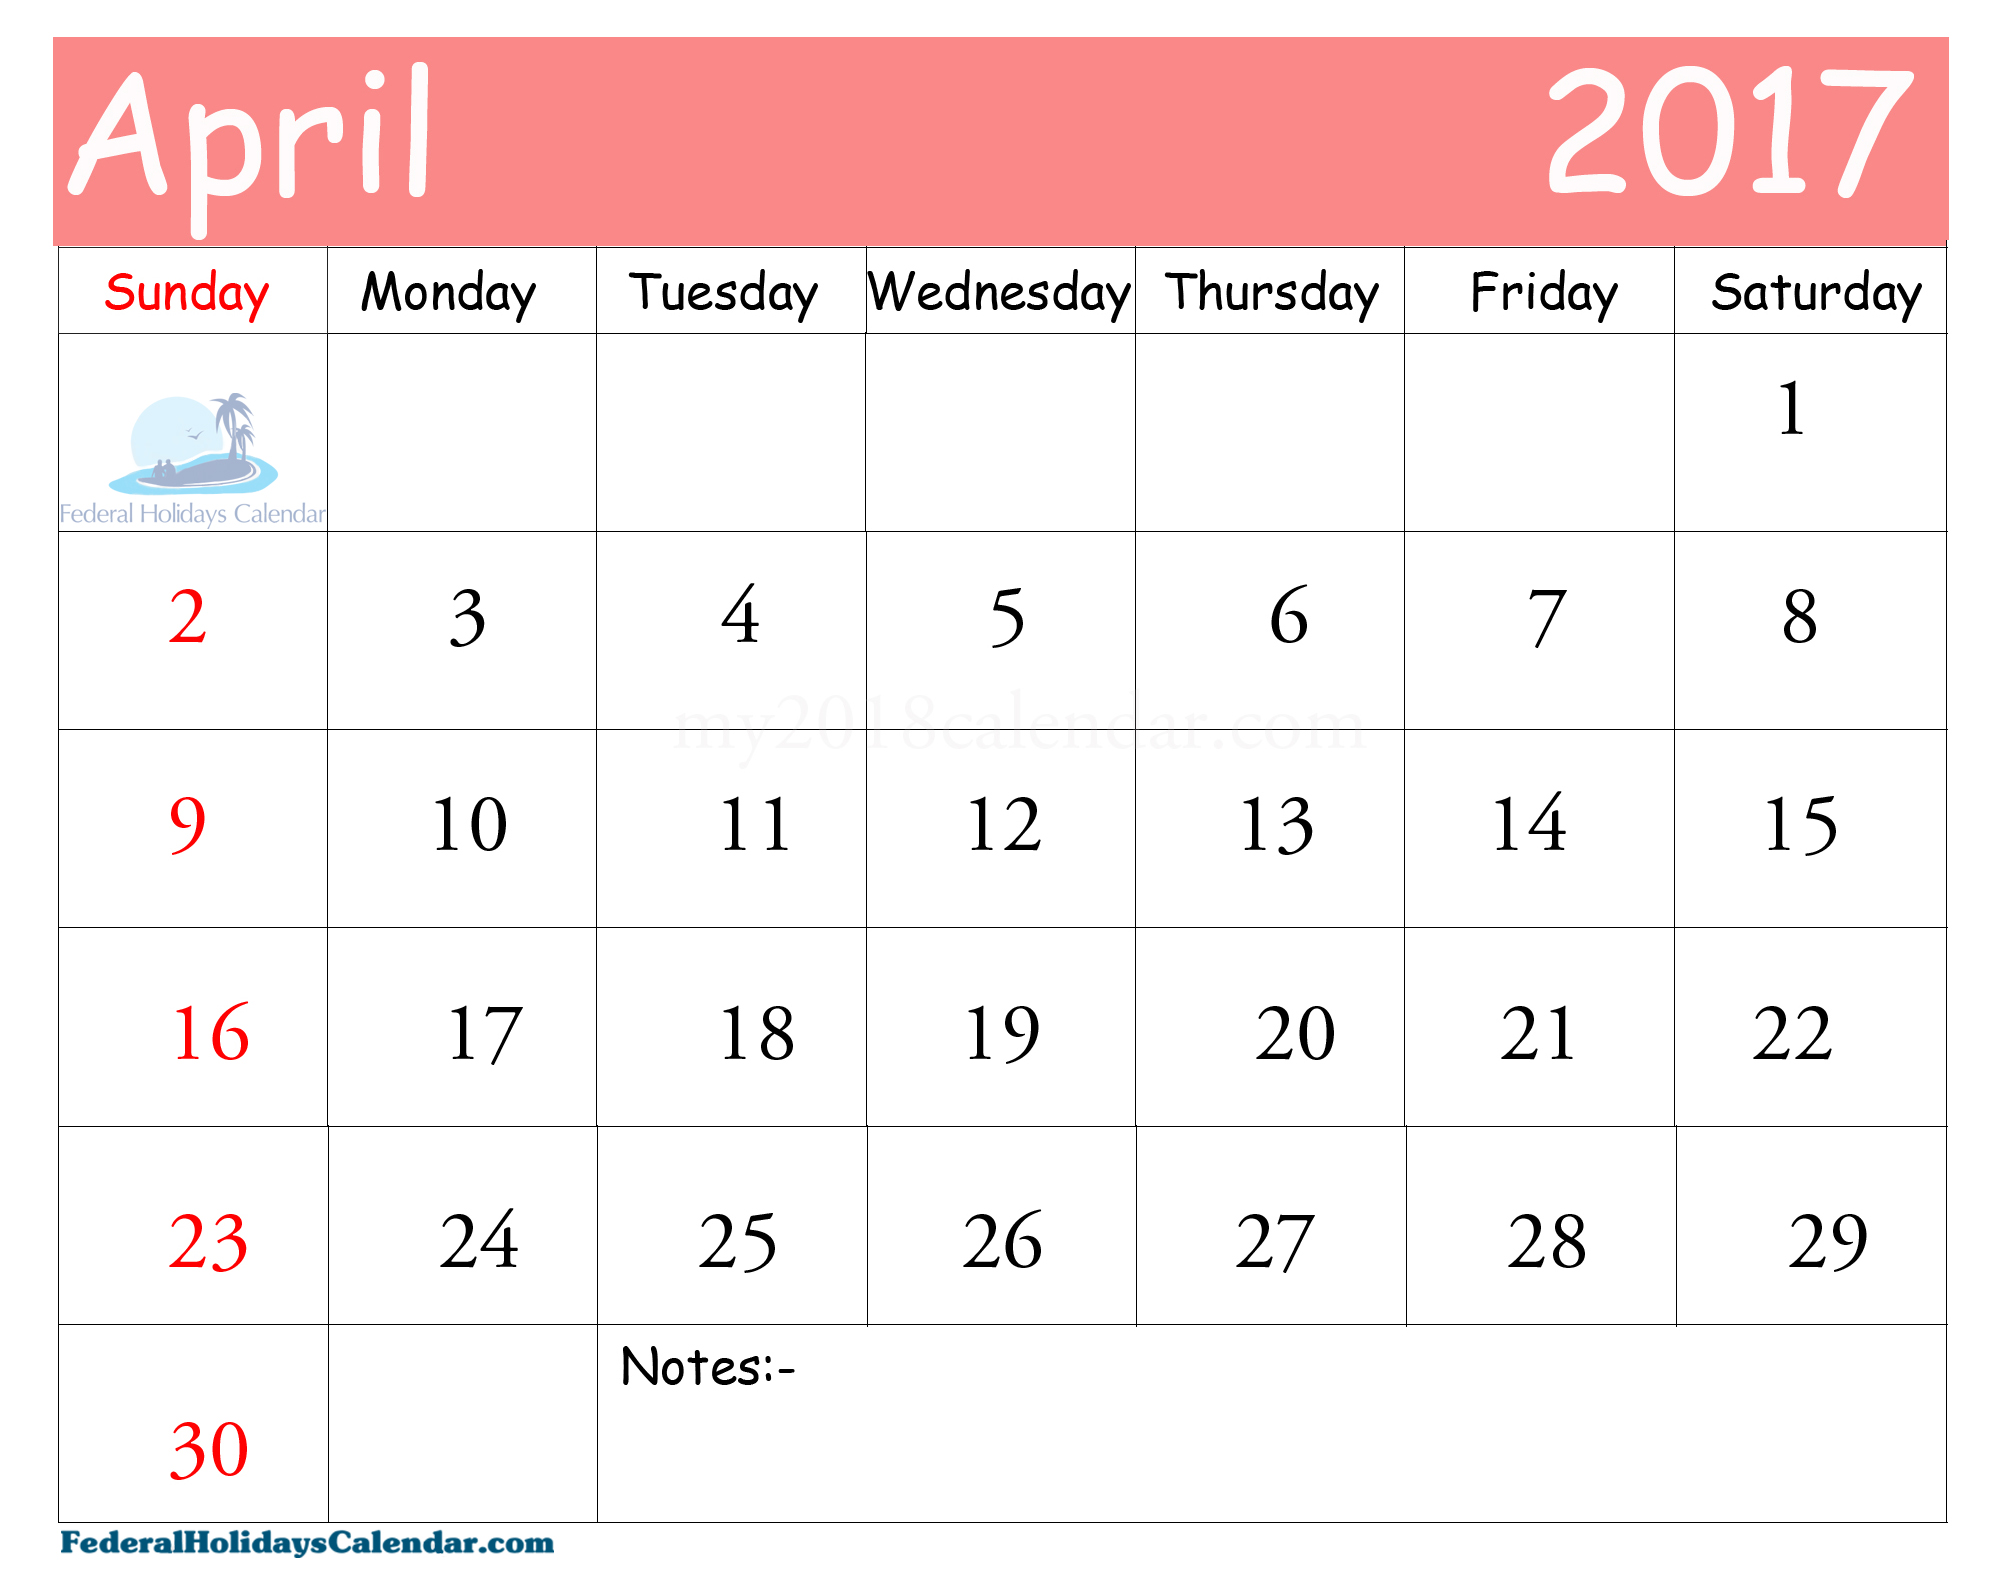 April 2017 Calendar Printable UK